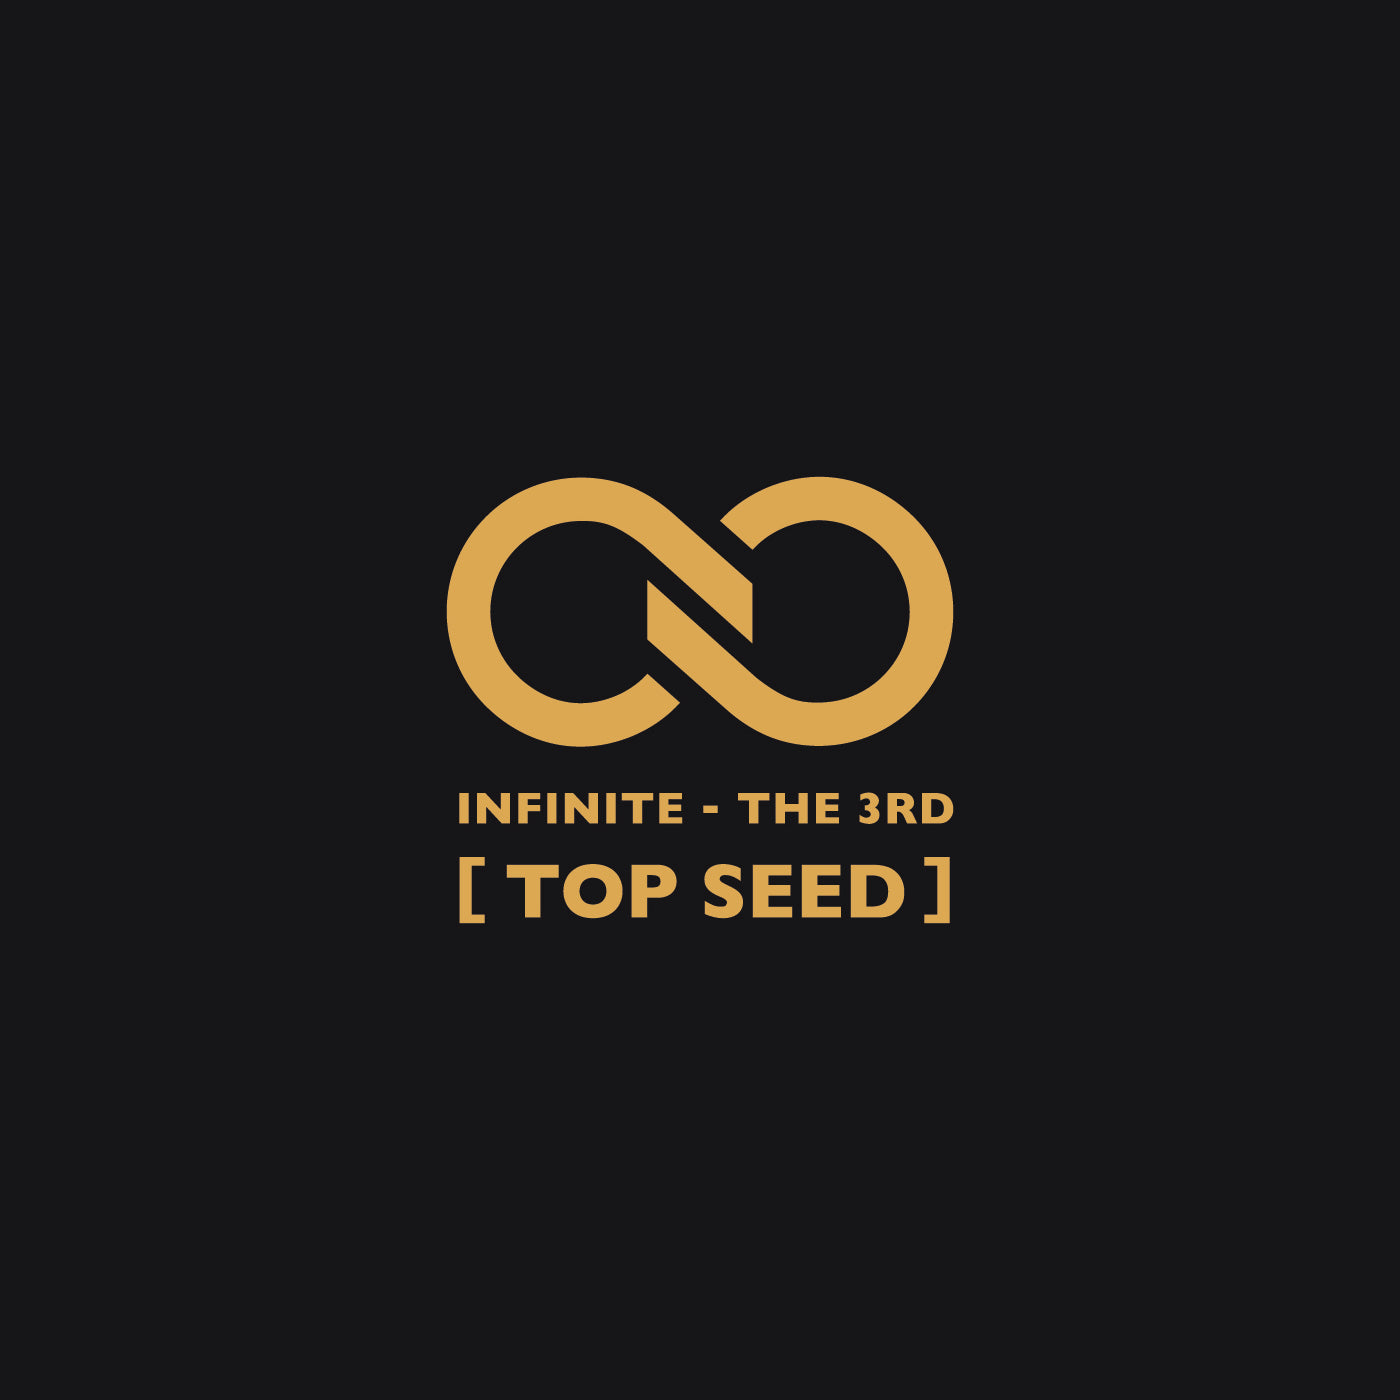 INFINITE 3RD ALBUM 'TOP SEED' + POSTER